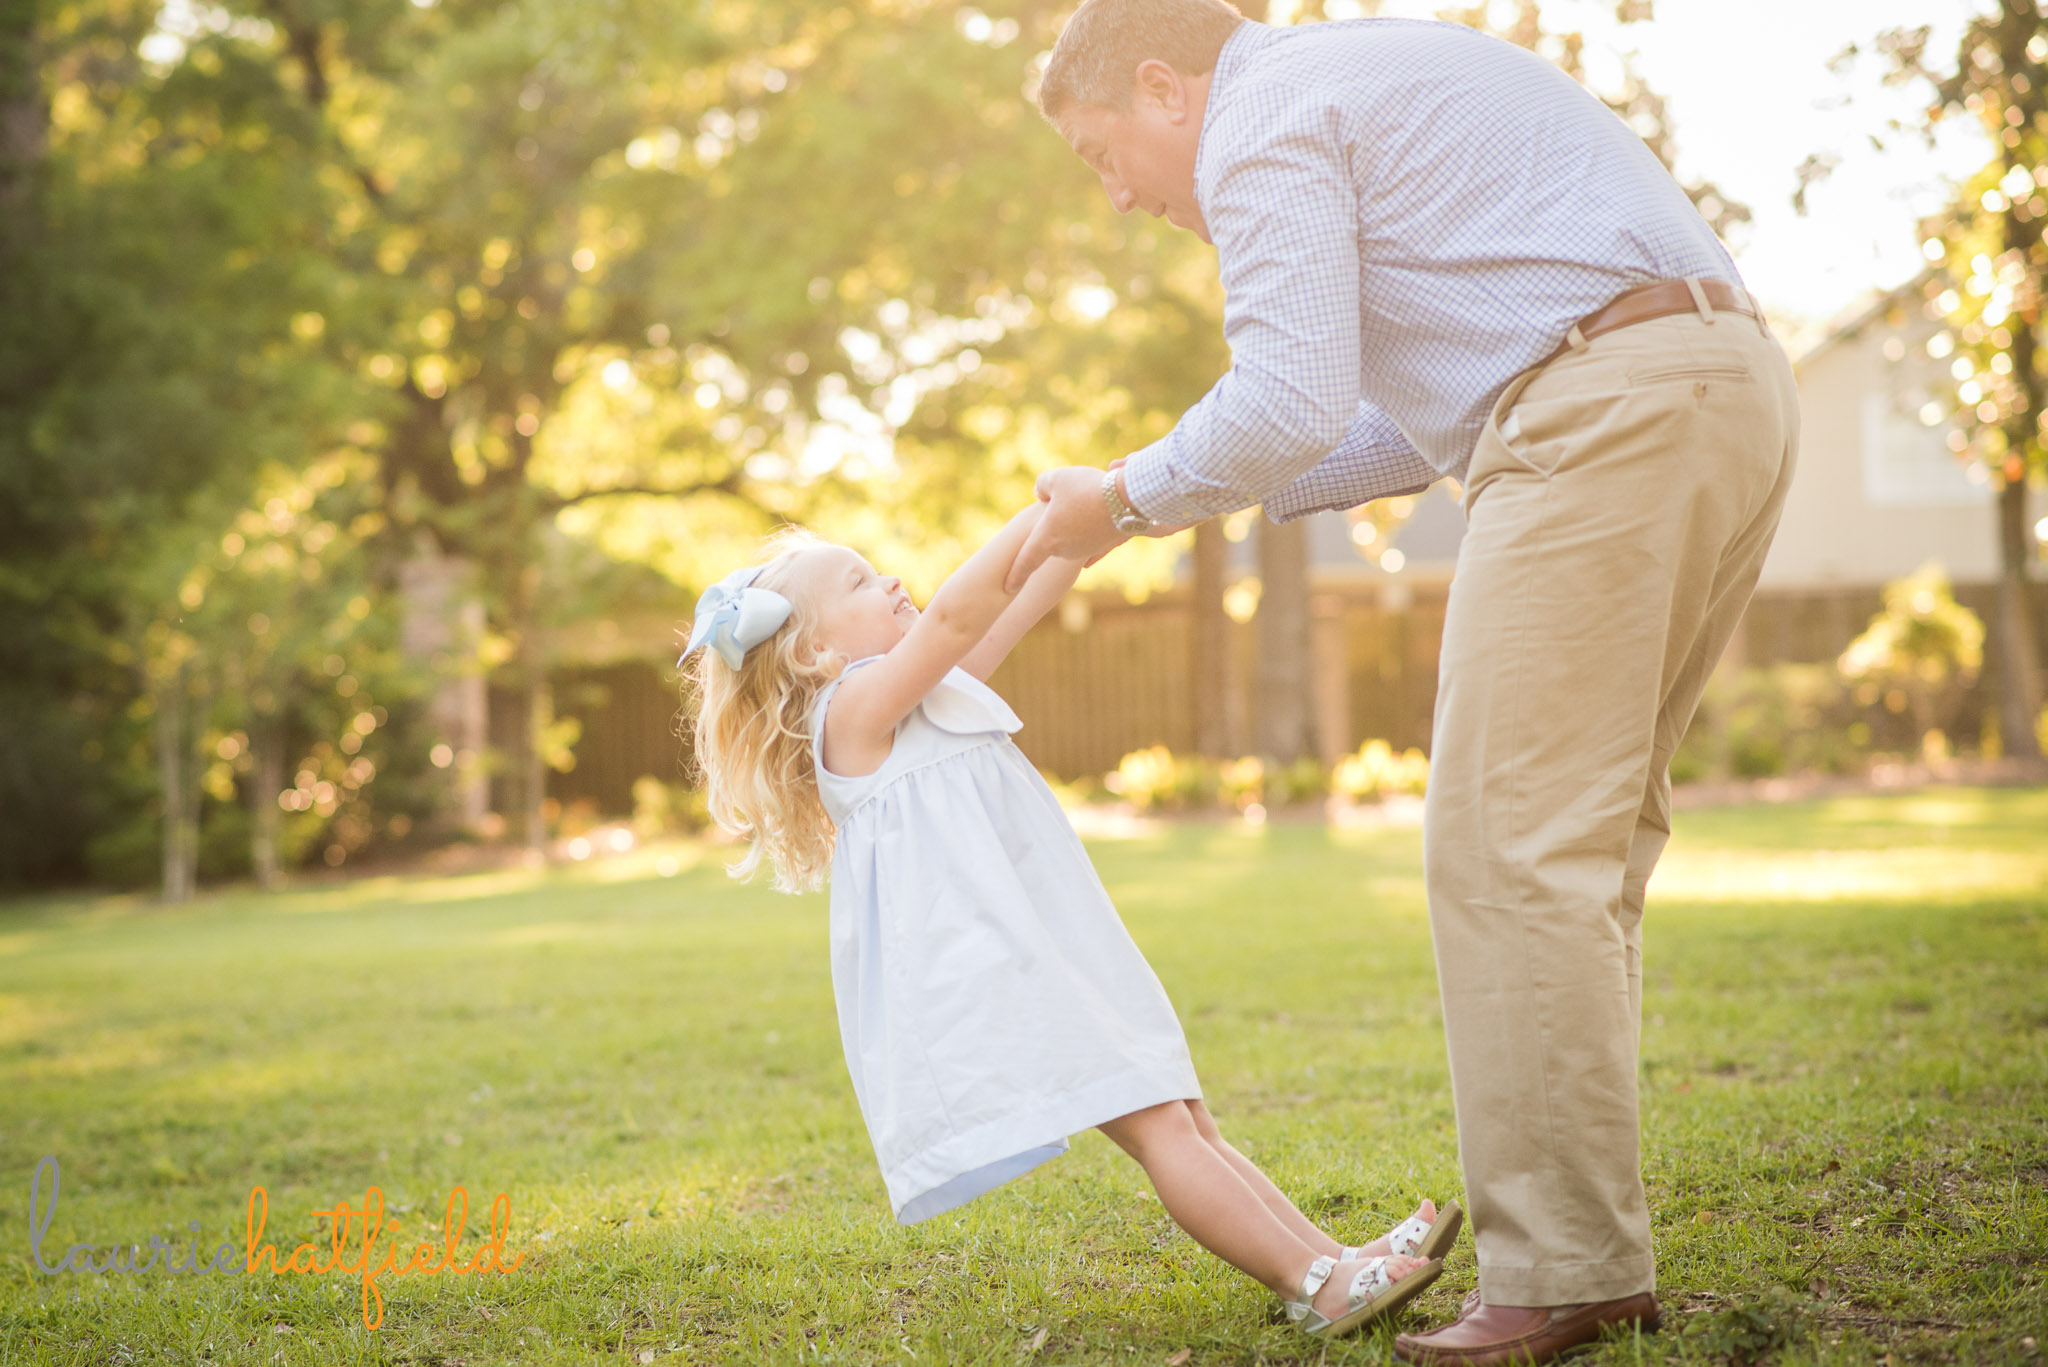 Dad playing with little girl   Mobile AL family lifestyle photographer Laurie Hatfield Photography